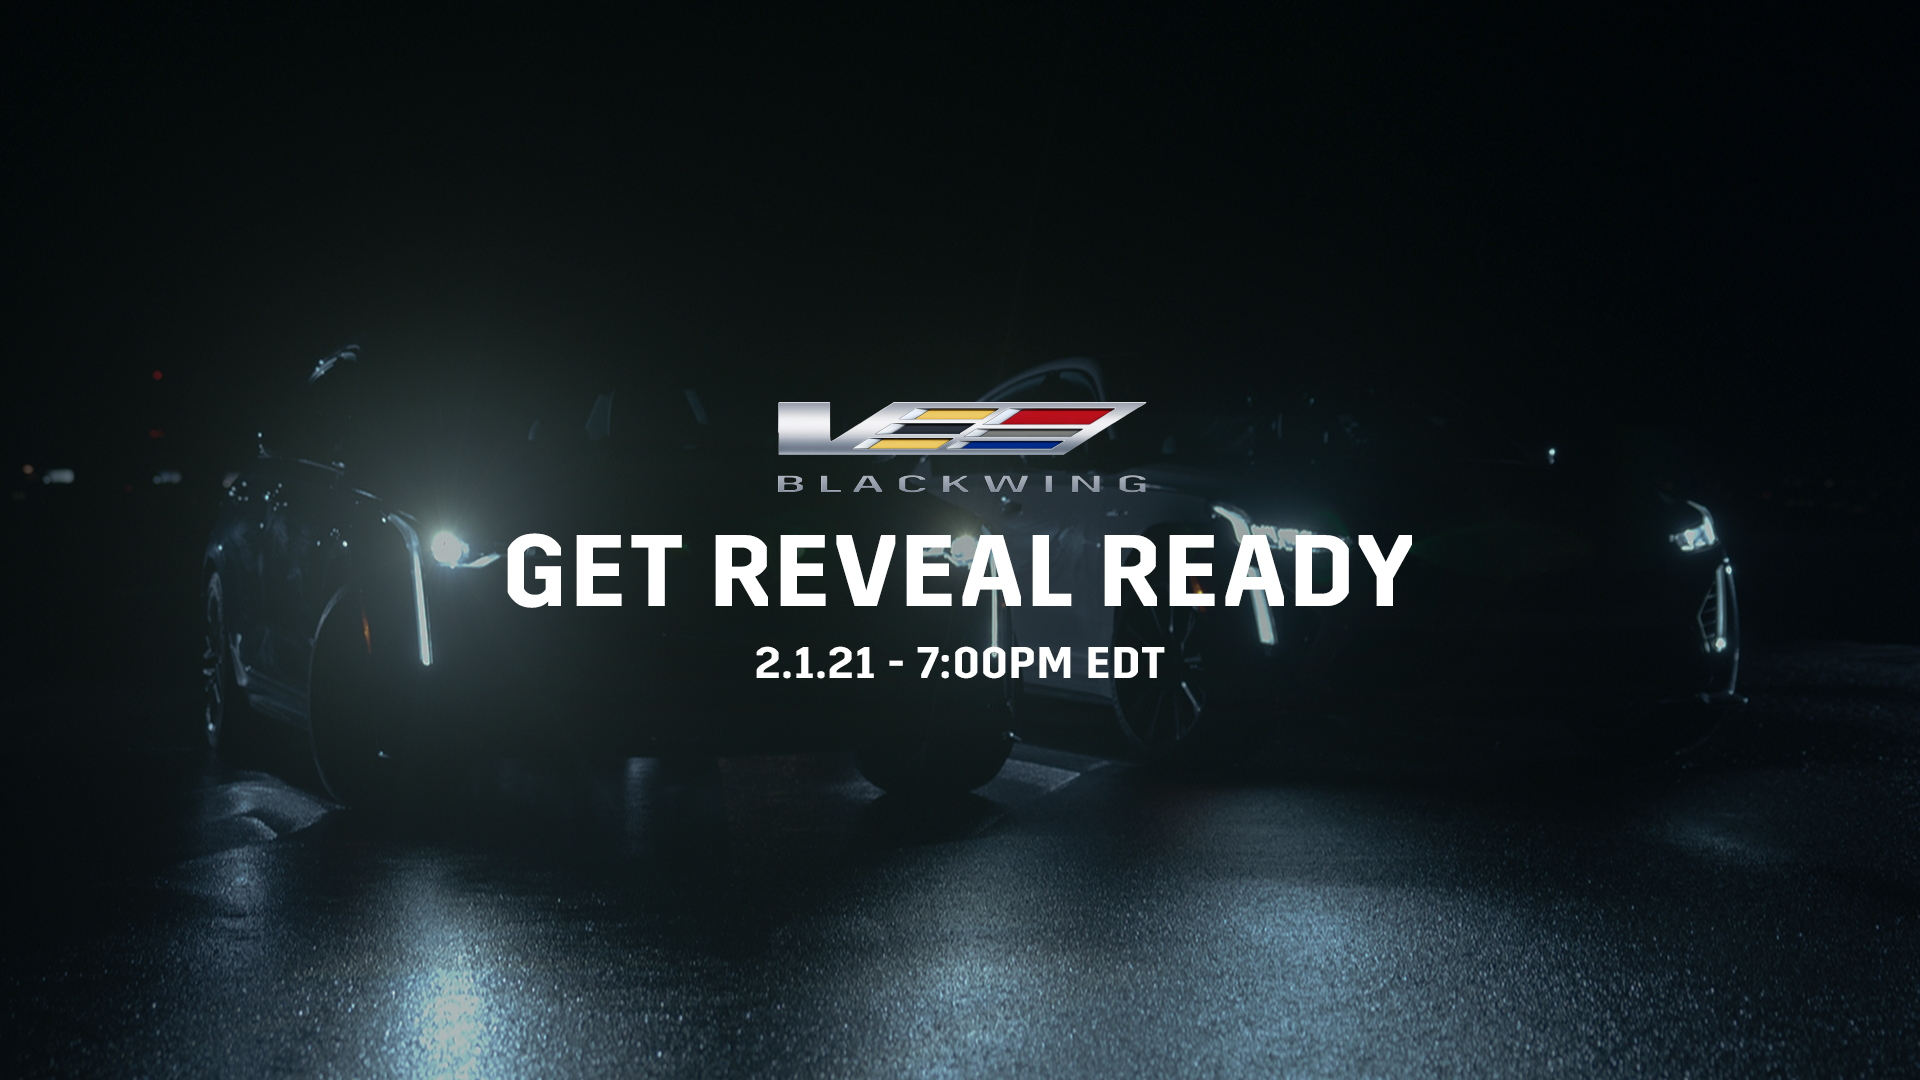 Cadillac Blackwing reveal